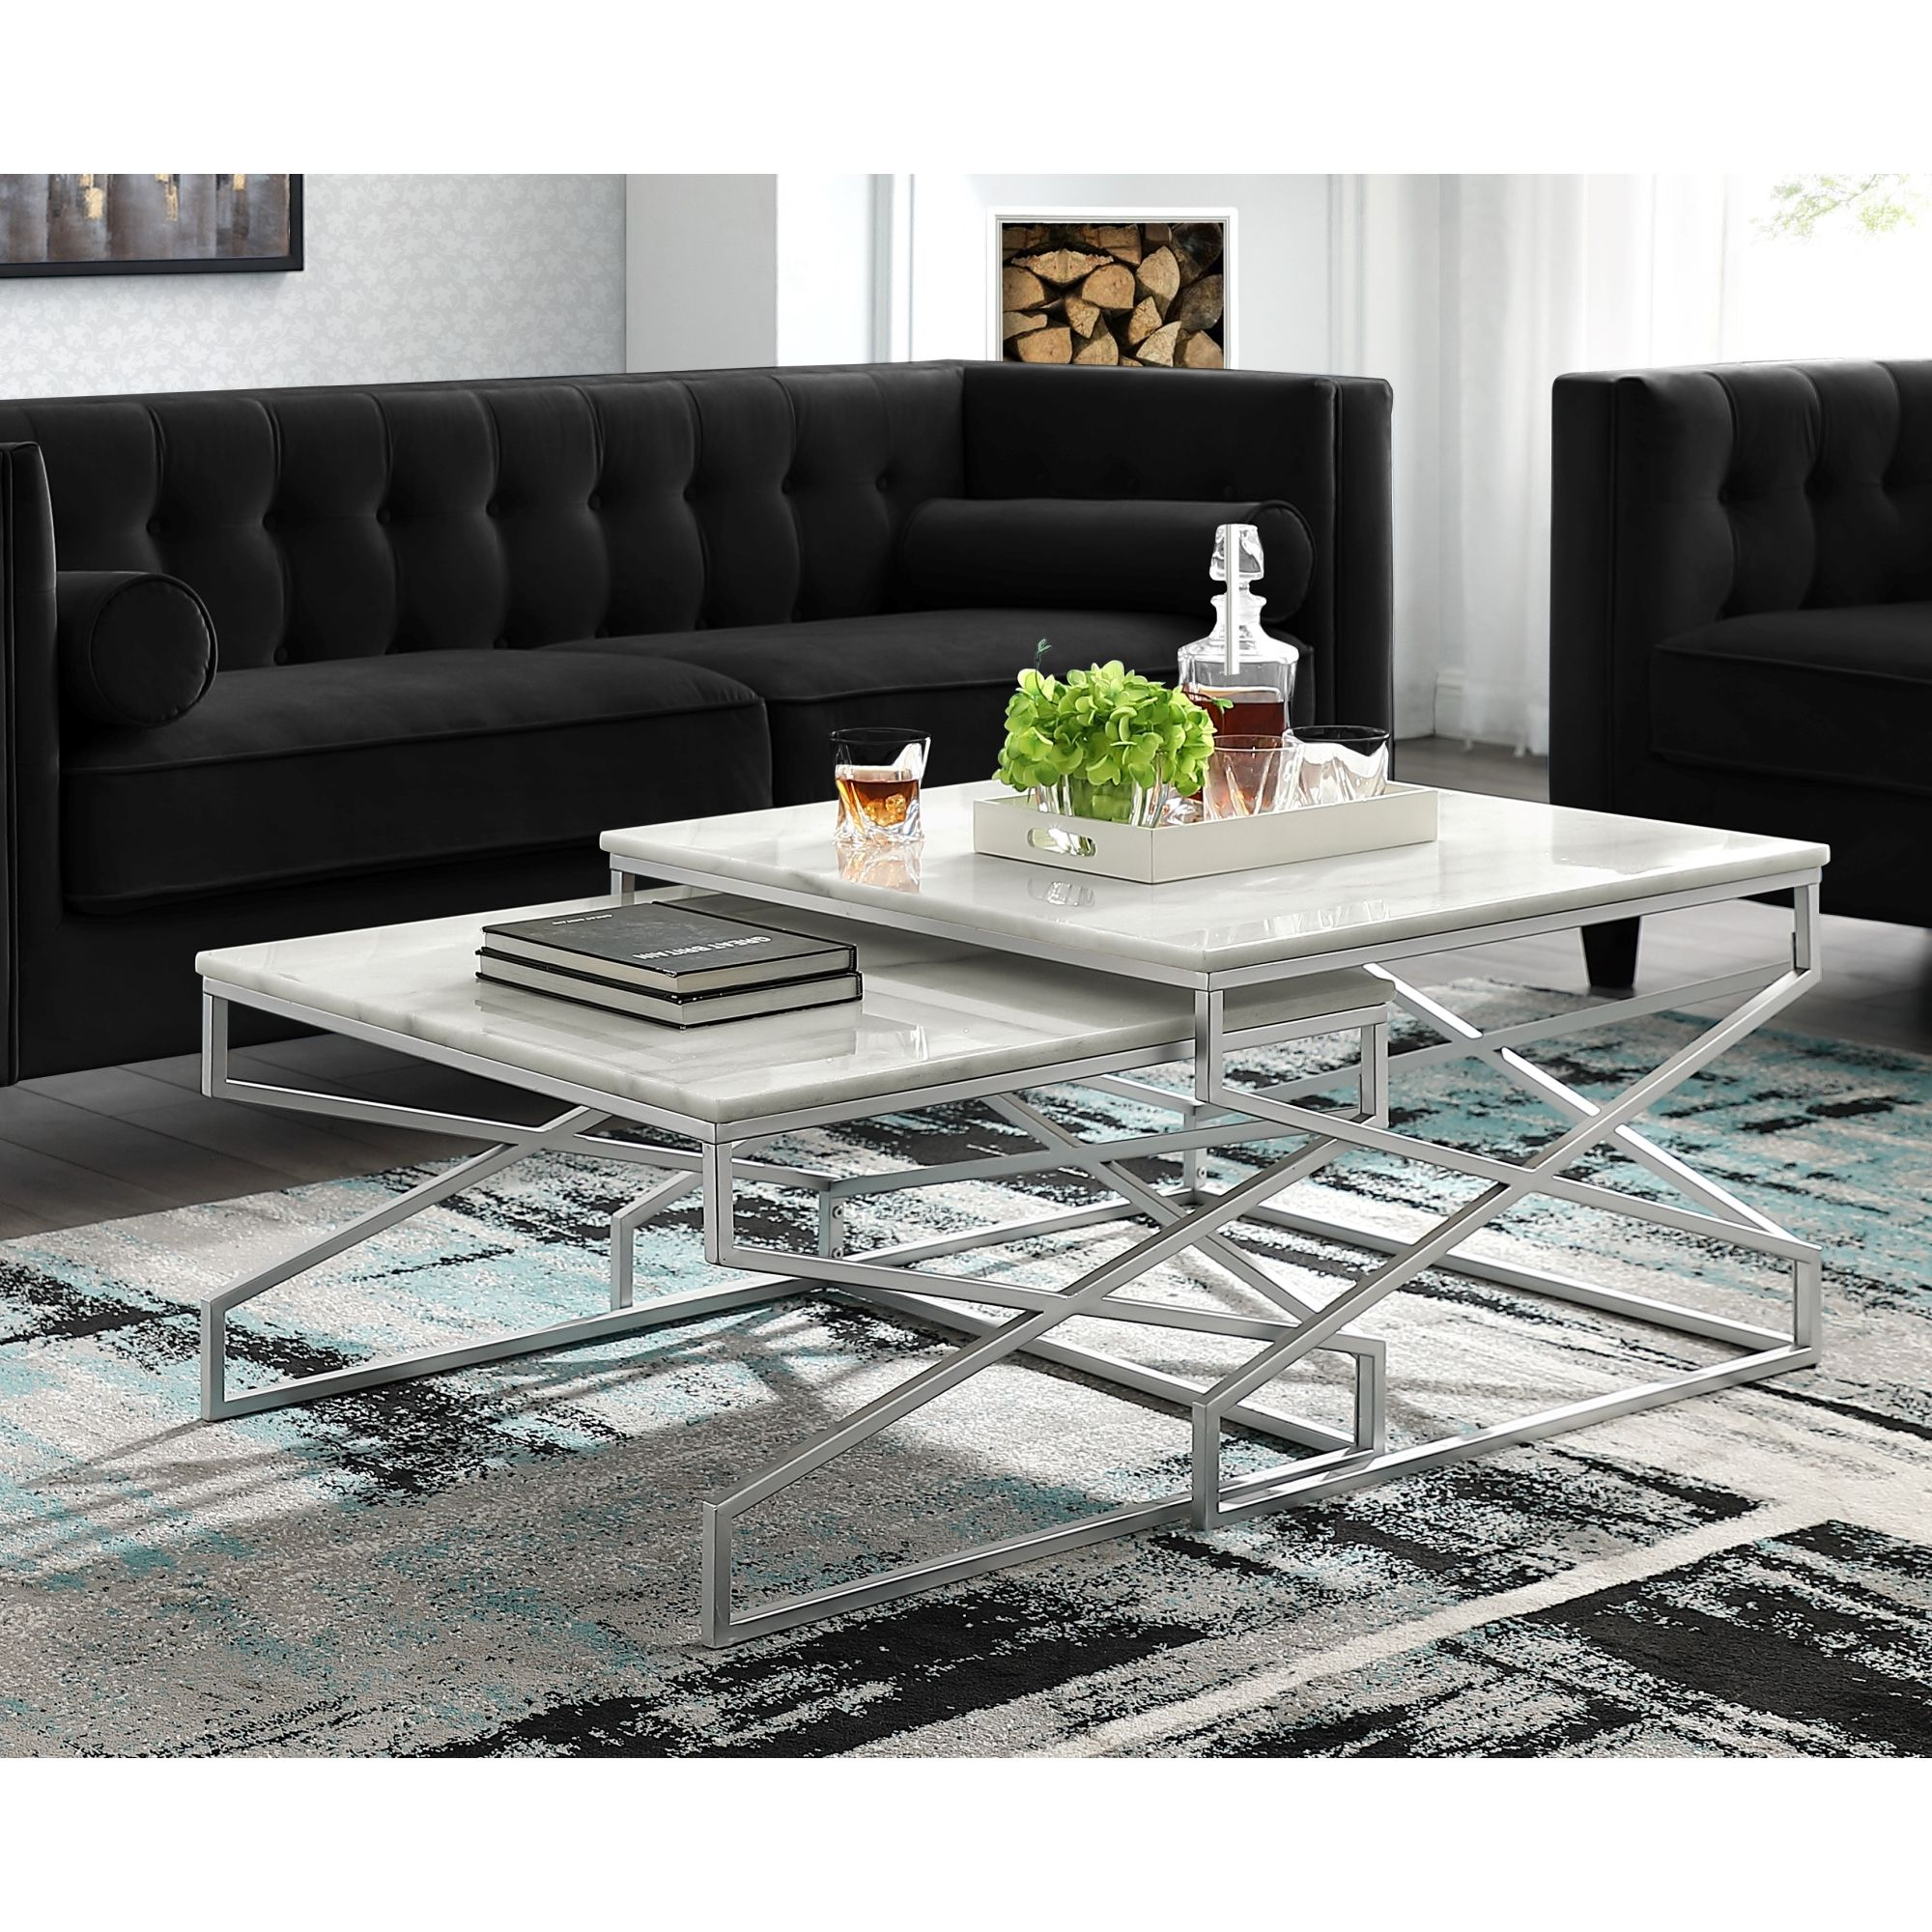 Malou Square Top Nesting Coffee Table In 2021 Nesting Coffee Tables Coffee Table Silver Coffee Table [ 2000 x 2000 Pixel ]